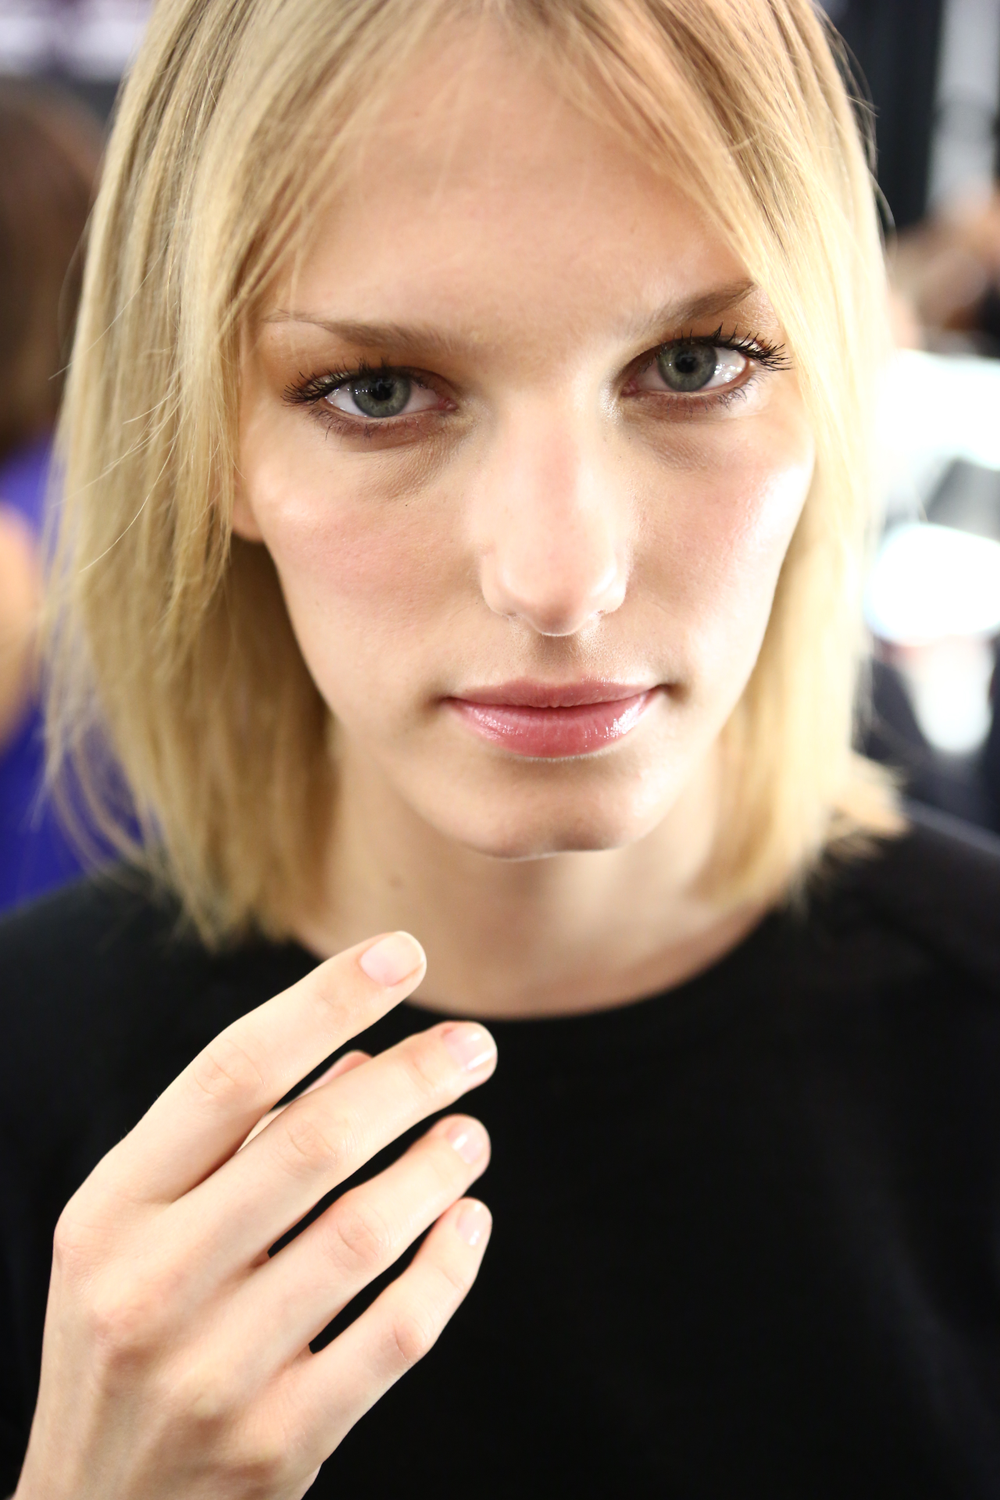 <p>In a show full of colorful caftans and flowy dresses, nails remained on the lighter side<strong>. Essie</strong> in First Base, Allure, Van D&rsquo;Go, and Good to Go topped off the model&rsquo;s nails.</p>